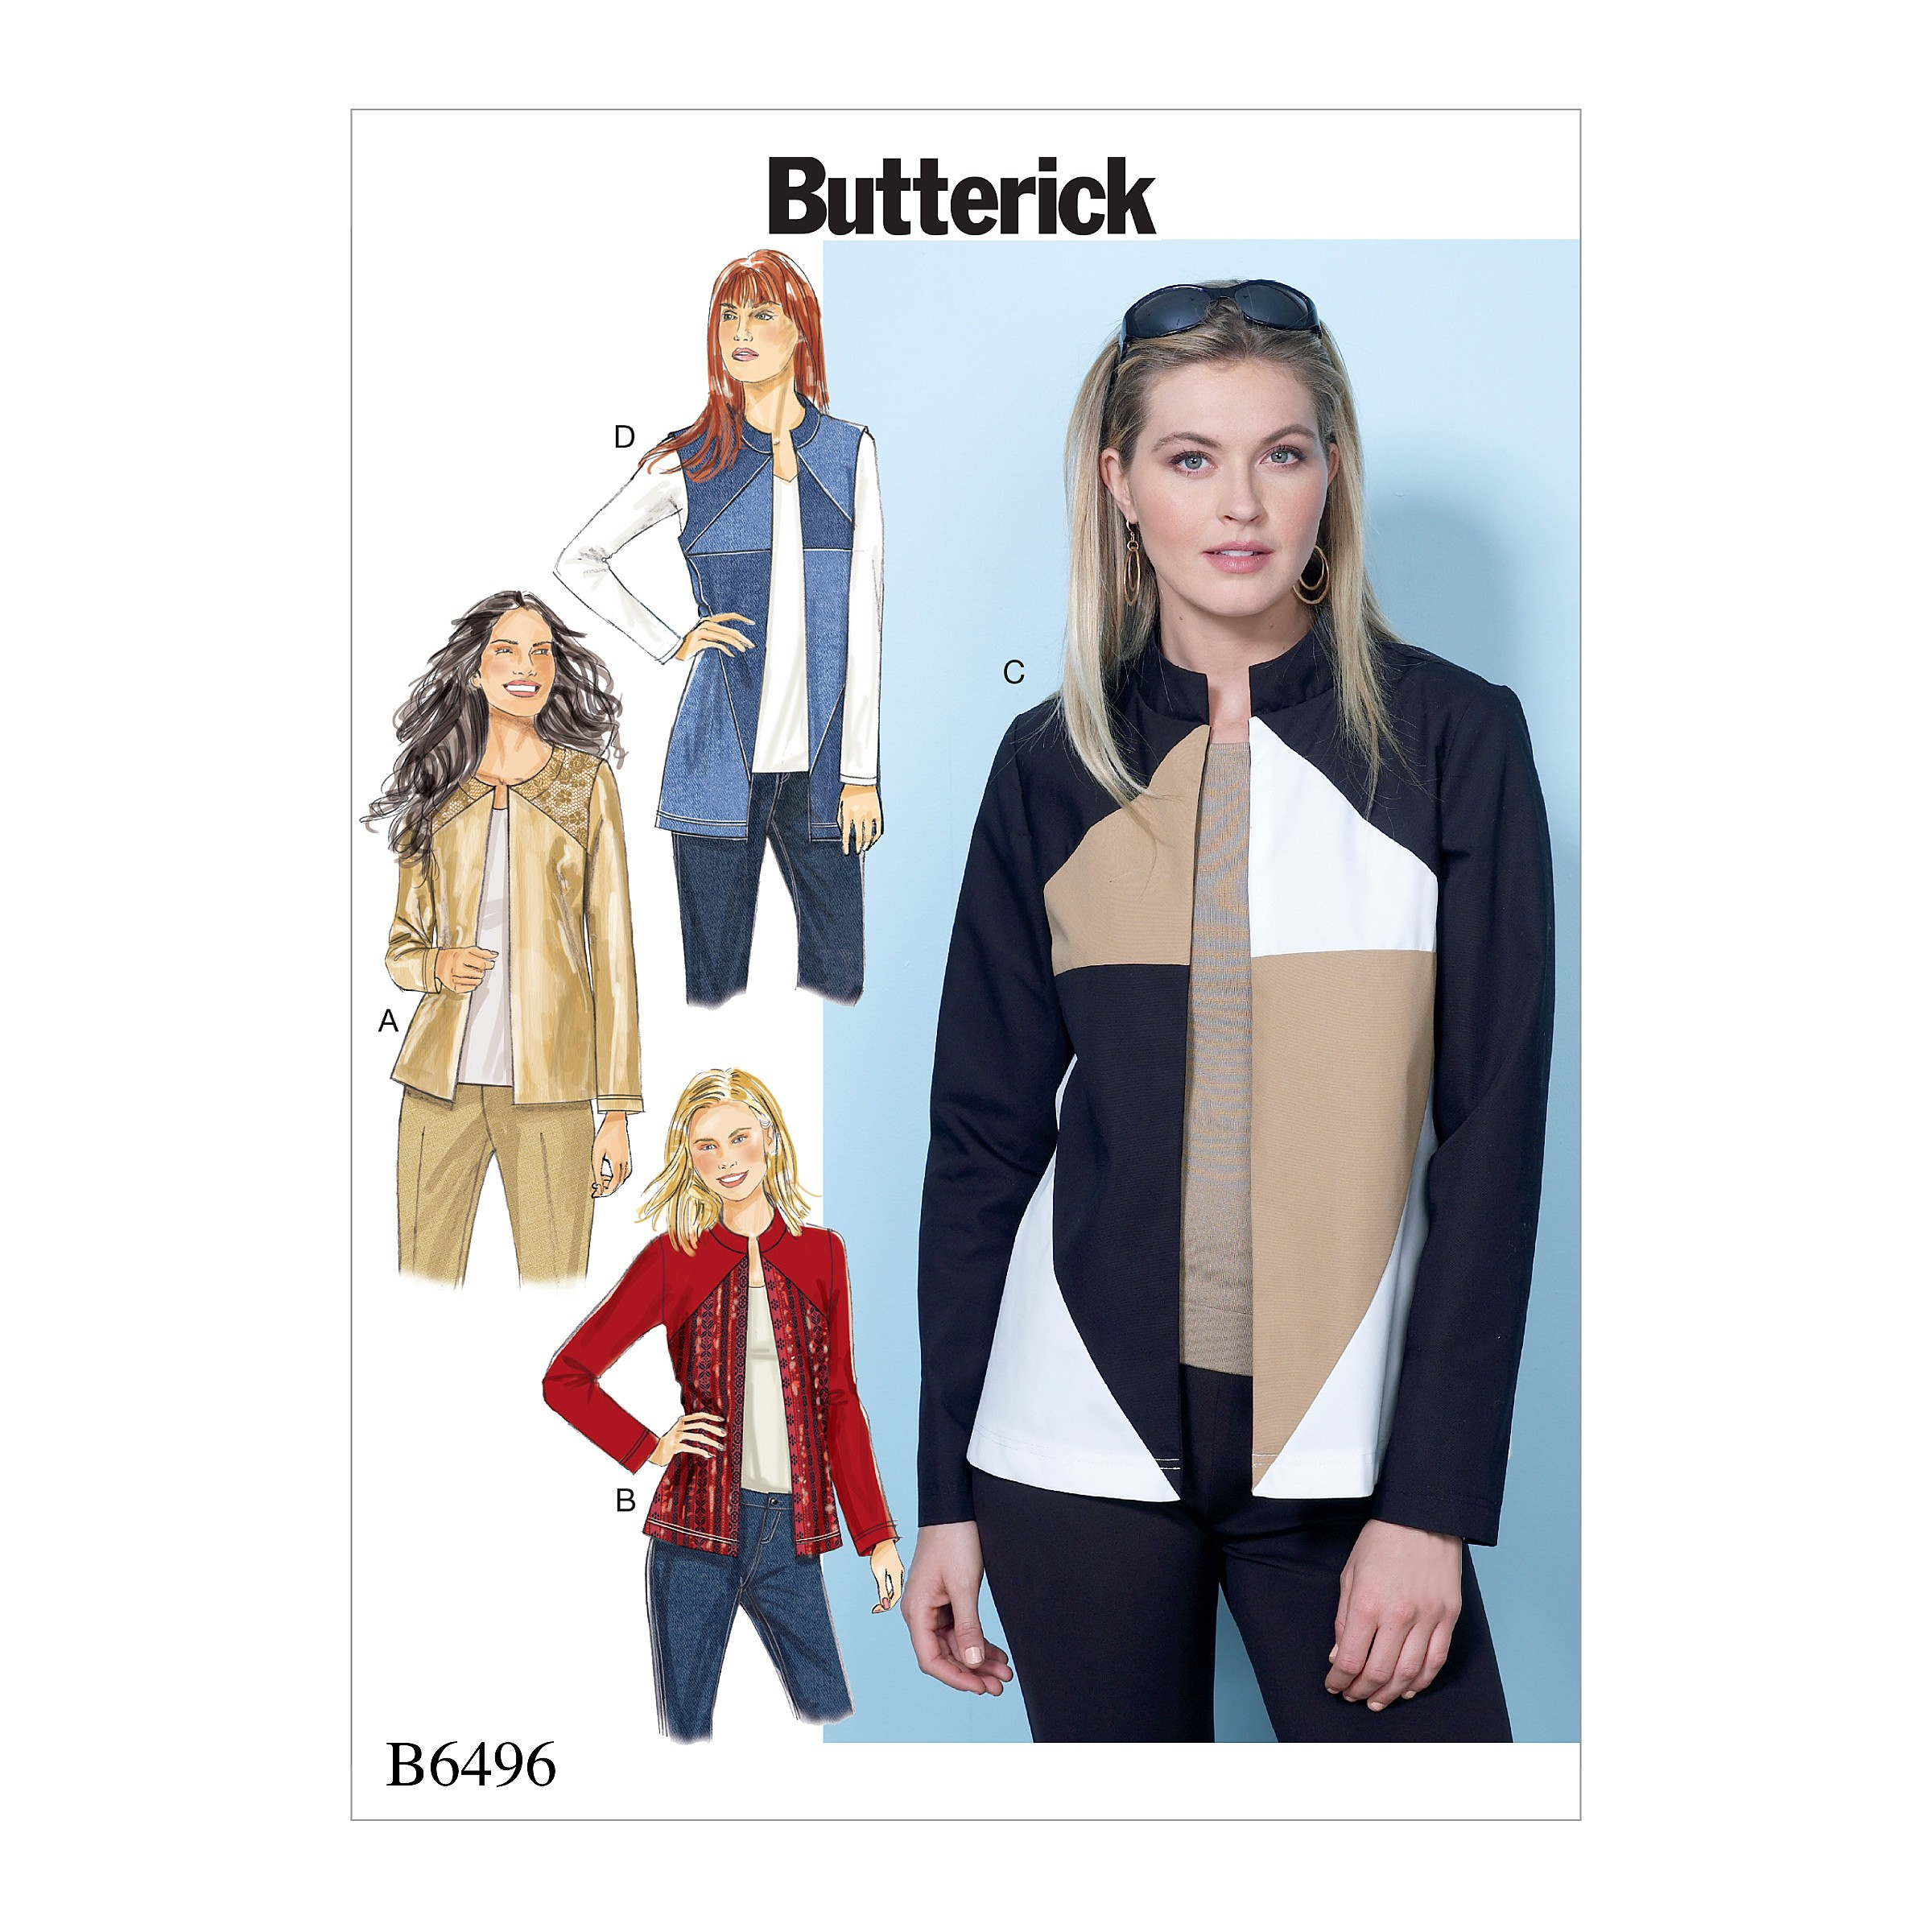 Butterick Sewing Pattern 6496 Misses' Jackets & Vests Contrast & Seam Variations